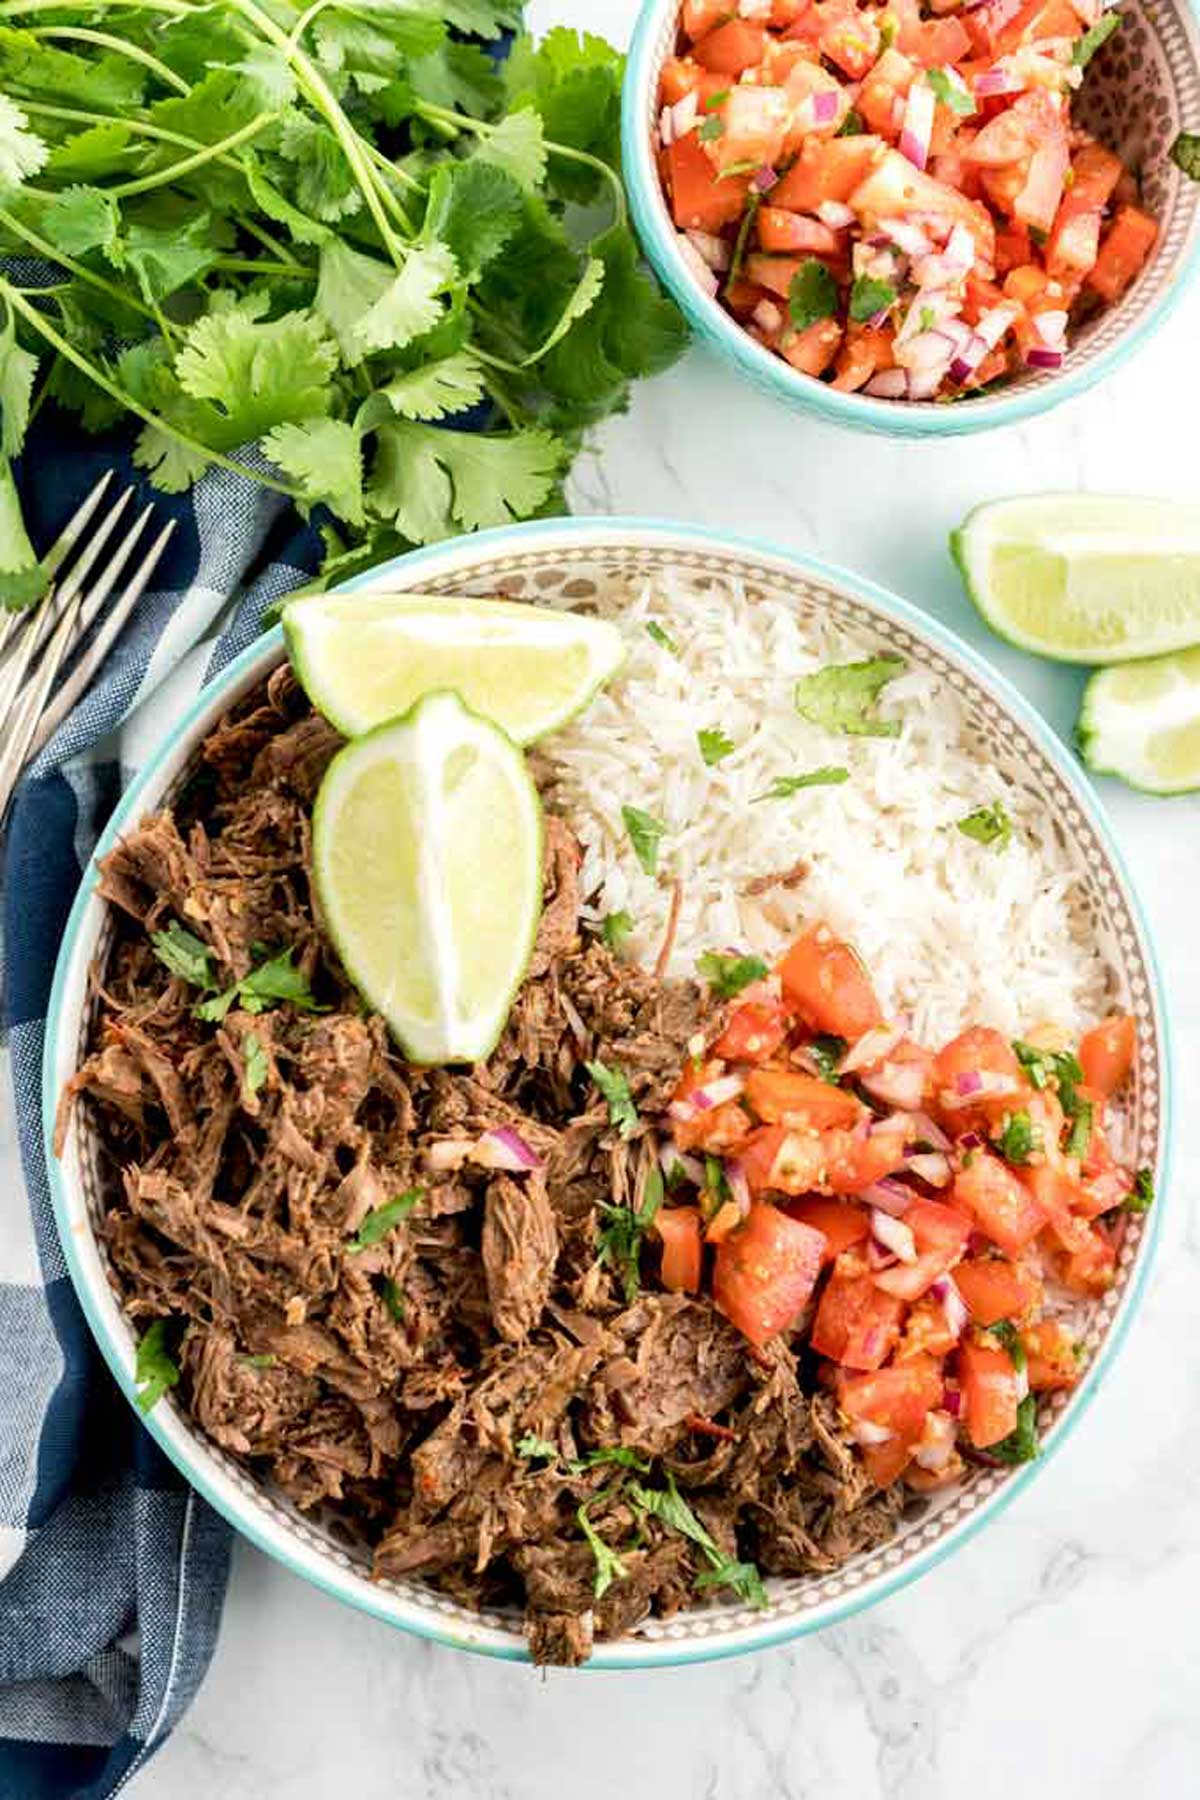 Chipotle Barbacoa Bowl with shredded beef, rice and pico de gallo.